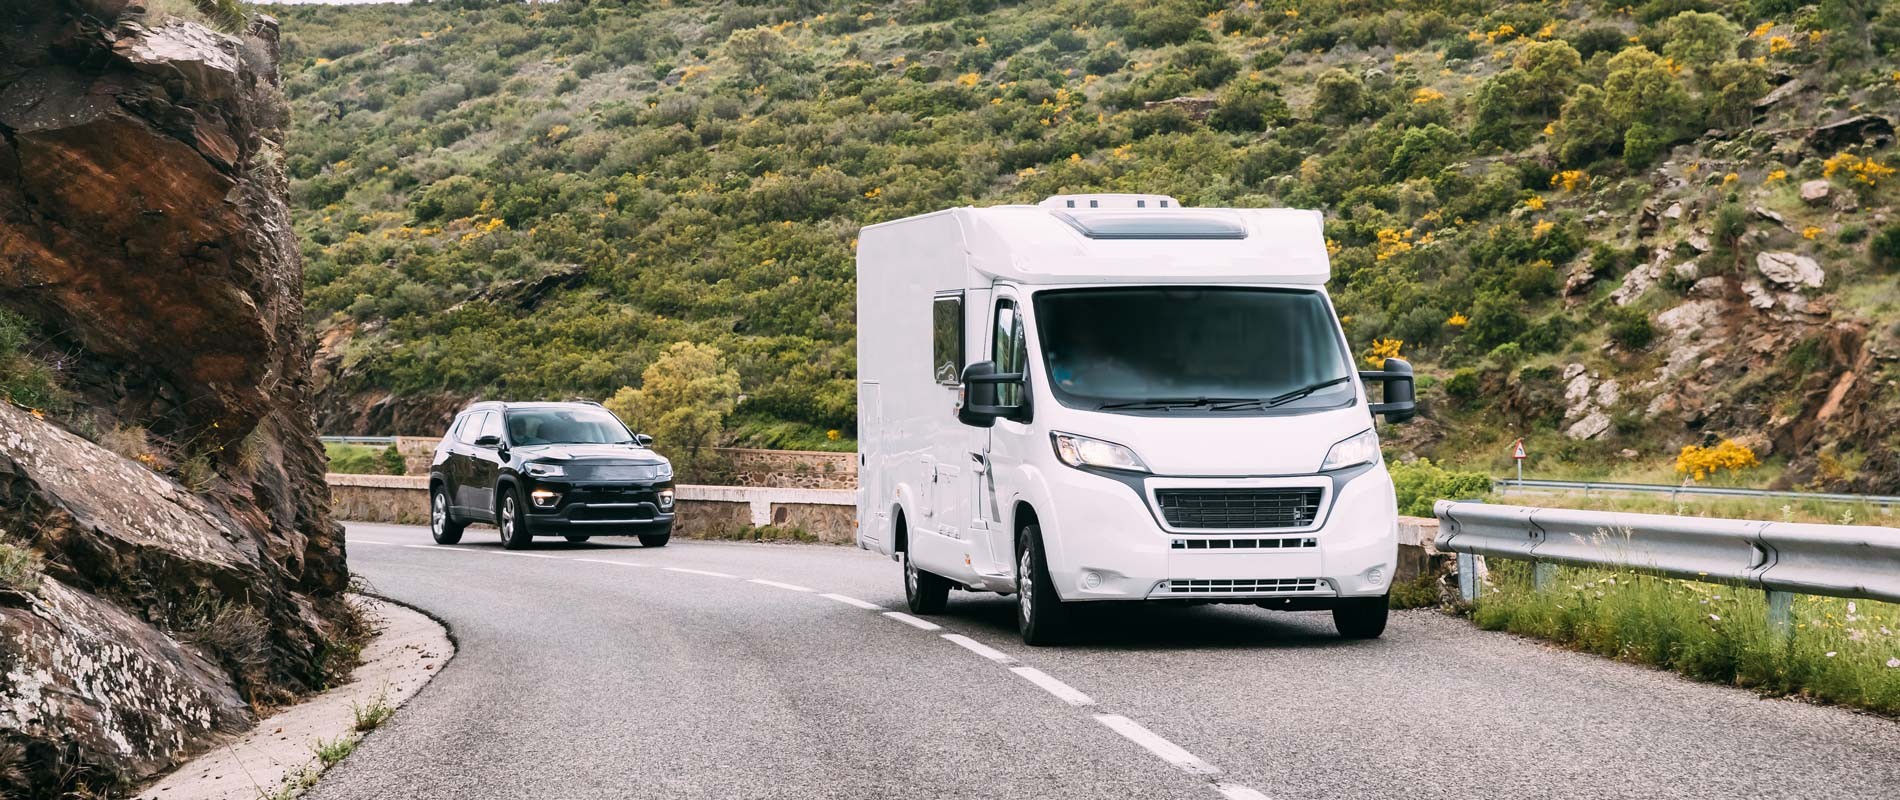 Hired motorhome driving on main road in country valley